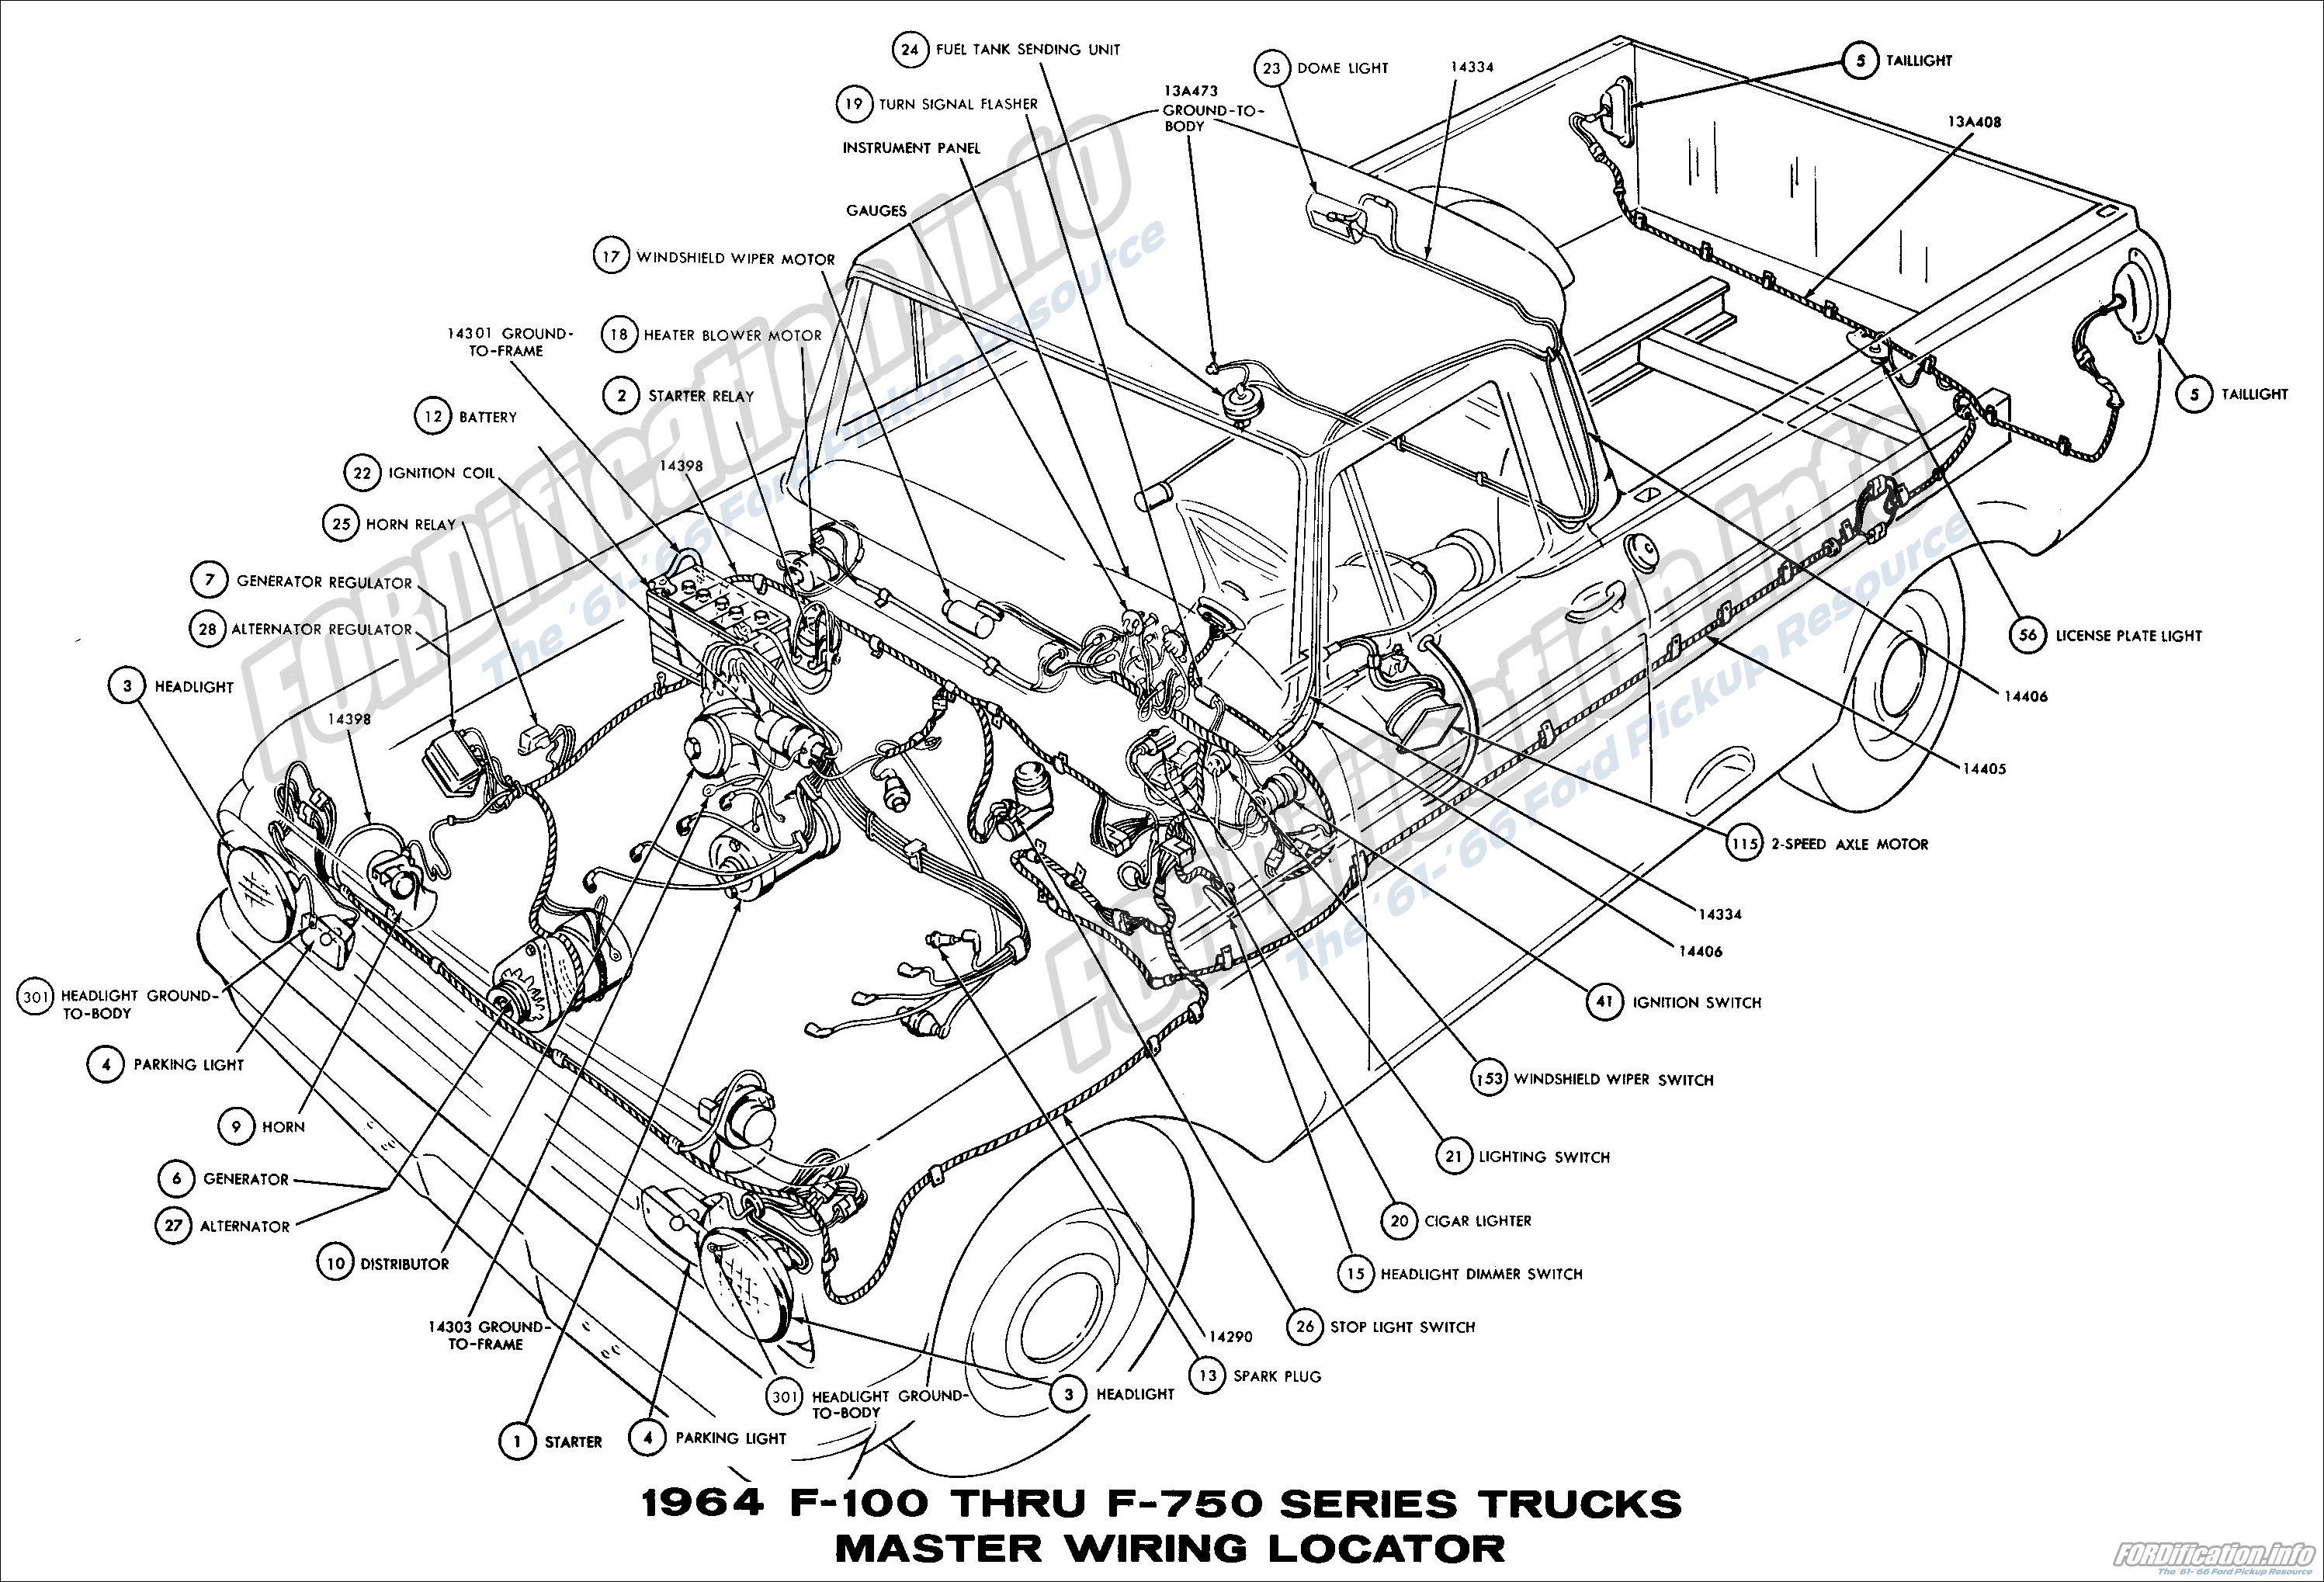 1964_01_gif 1964 ford truck wiring diagrams fordification info the '61 '66 ford truck wiring schematics at bayanpartner.co